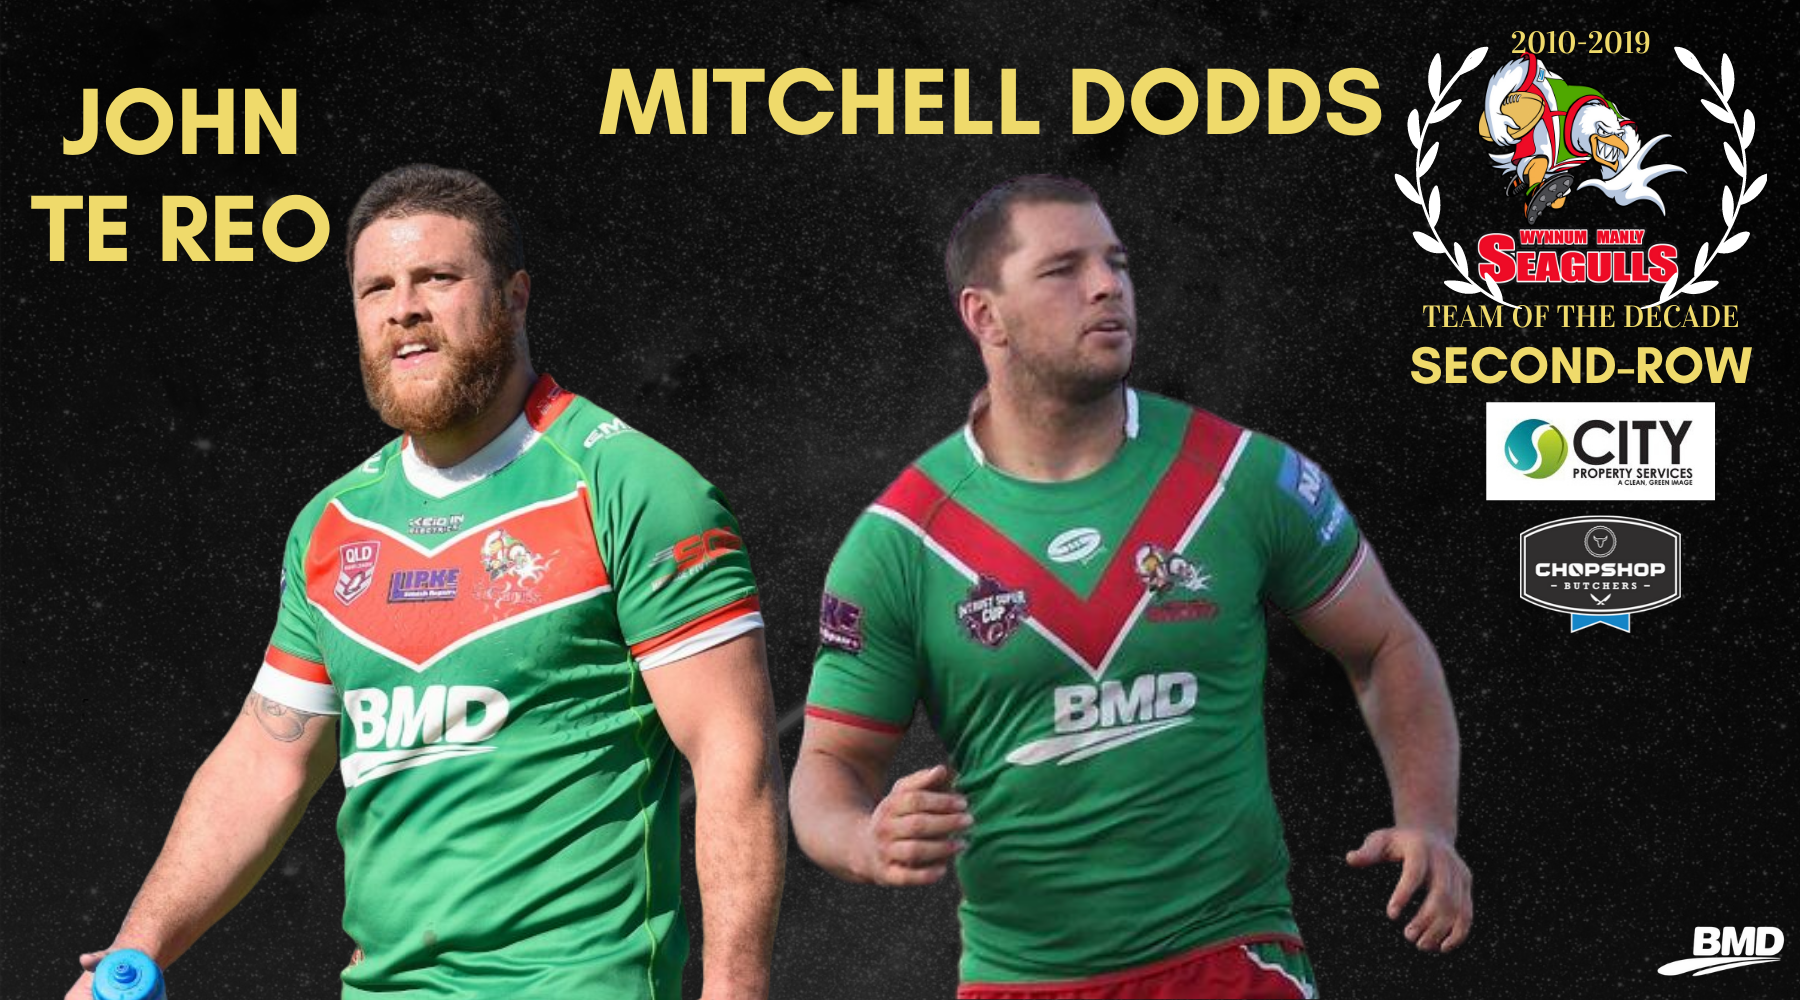 Gulls Fans Vote John Te Reo and Mitchell Dodds